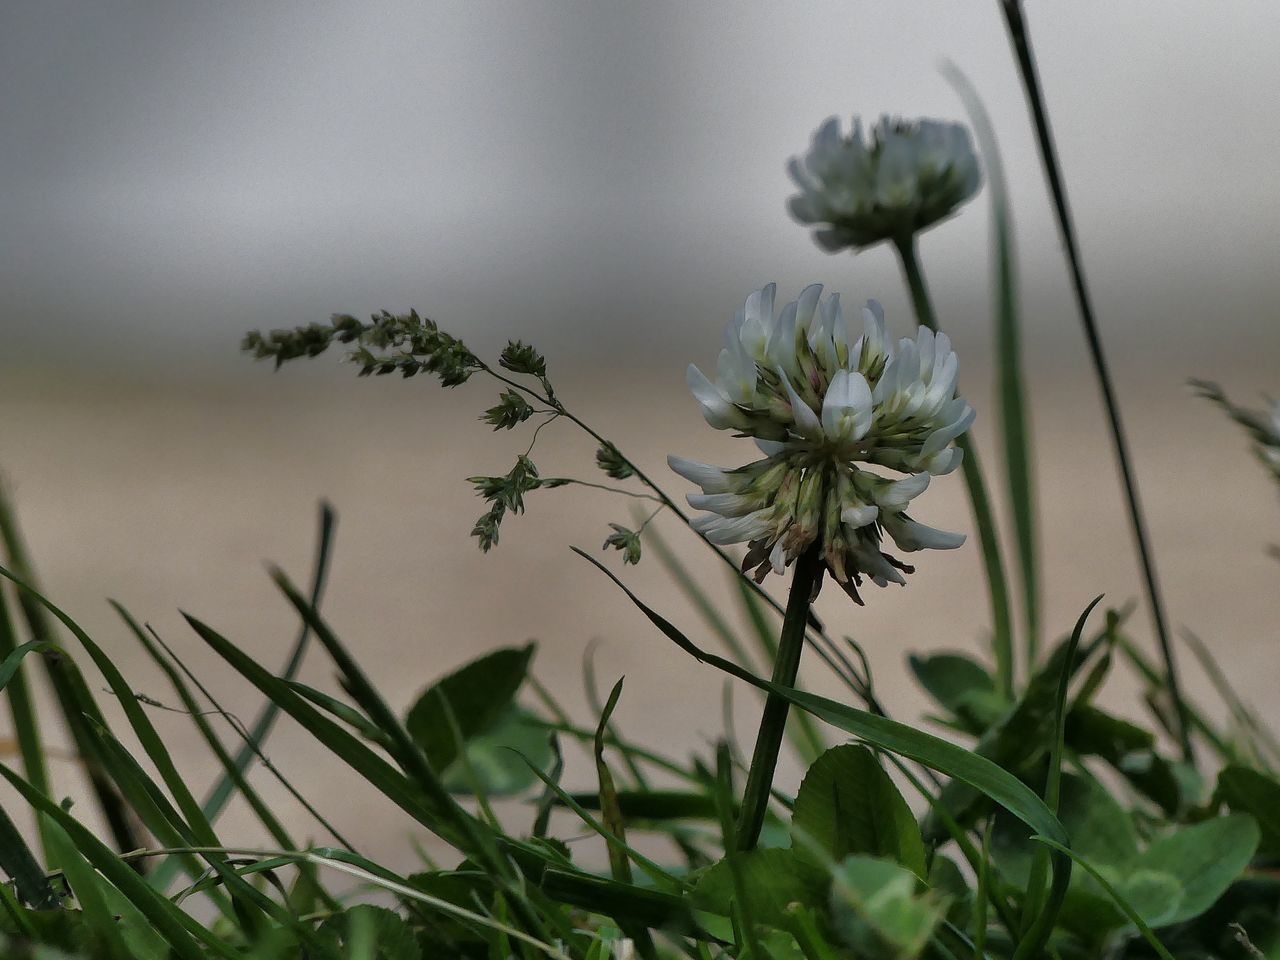 At The Edge Of The Road Clover Blossom Plant Growth Summertime Nature Flower Day No People Outdoors Beauty In Nature Close-up Grass Fragility Flower Head Freshness Check This Out Moment